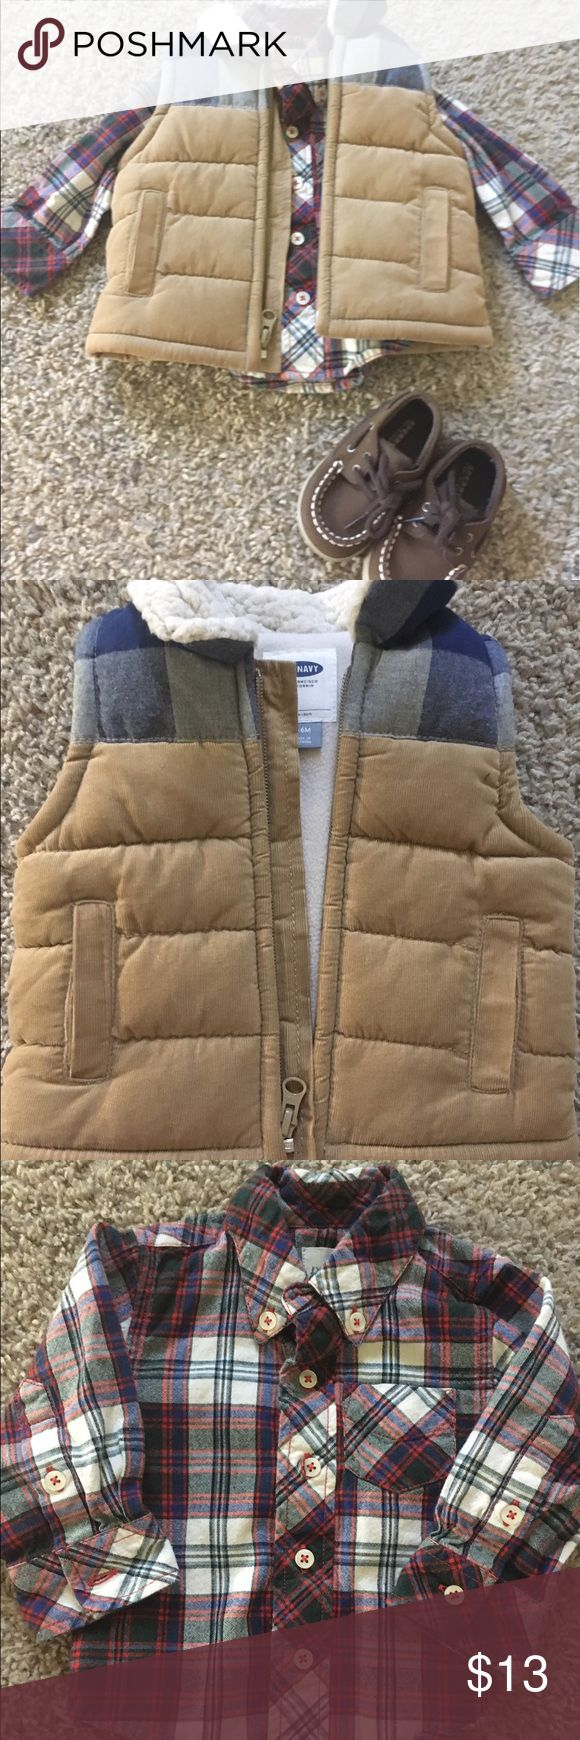 🔥SALE🔥 6-9mo boys outfit Old navy boy vest with Sherpa lining on neck and fleece lining inside. Long sleeve flannel to match. Both size 6-9 months. Comes with brown Sperry Brand shoes size 3! Reference closet #3 Matching Sets